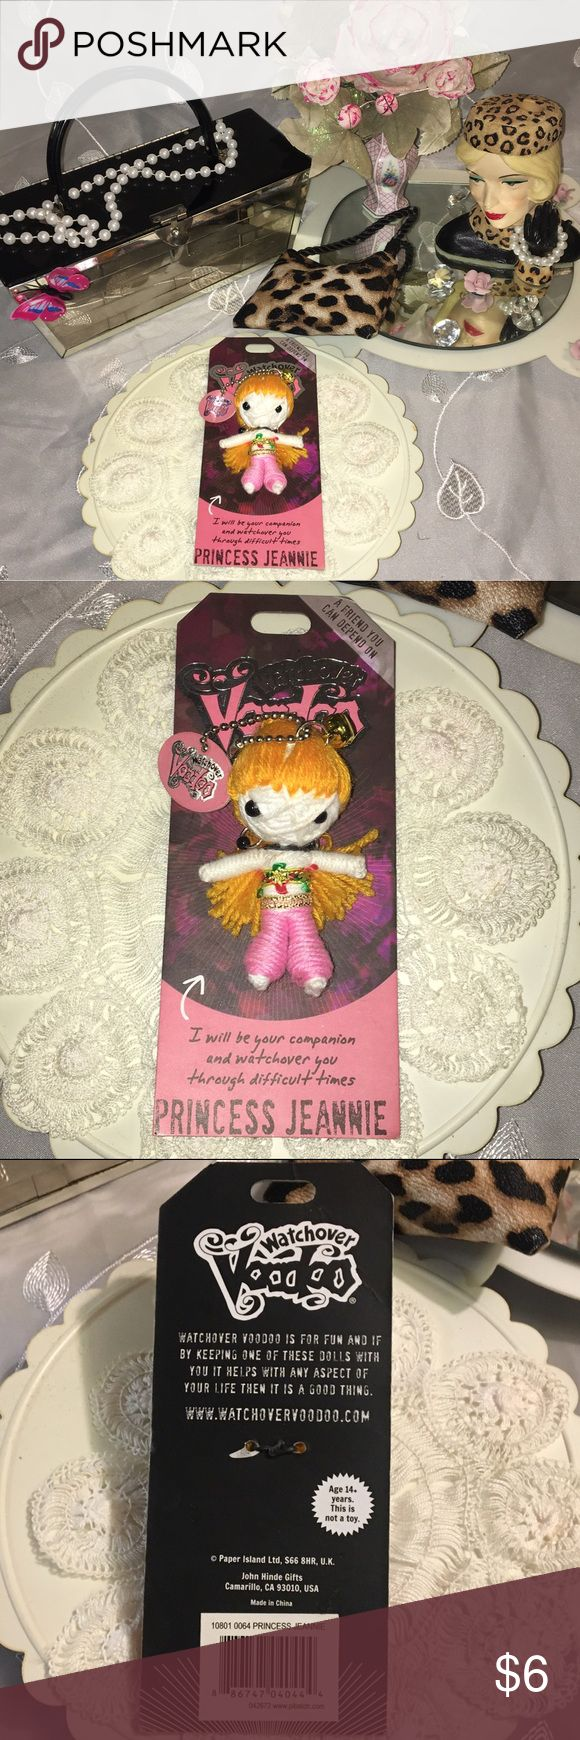 Watchover Voodoo keychain or purse pendant Adorable princess jeannie Voodoo watchover keychain or purse pendant.. Really cute and comes from a series.. new in package but no original tags.. Watchover Voodoo doll keychain Accessories